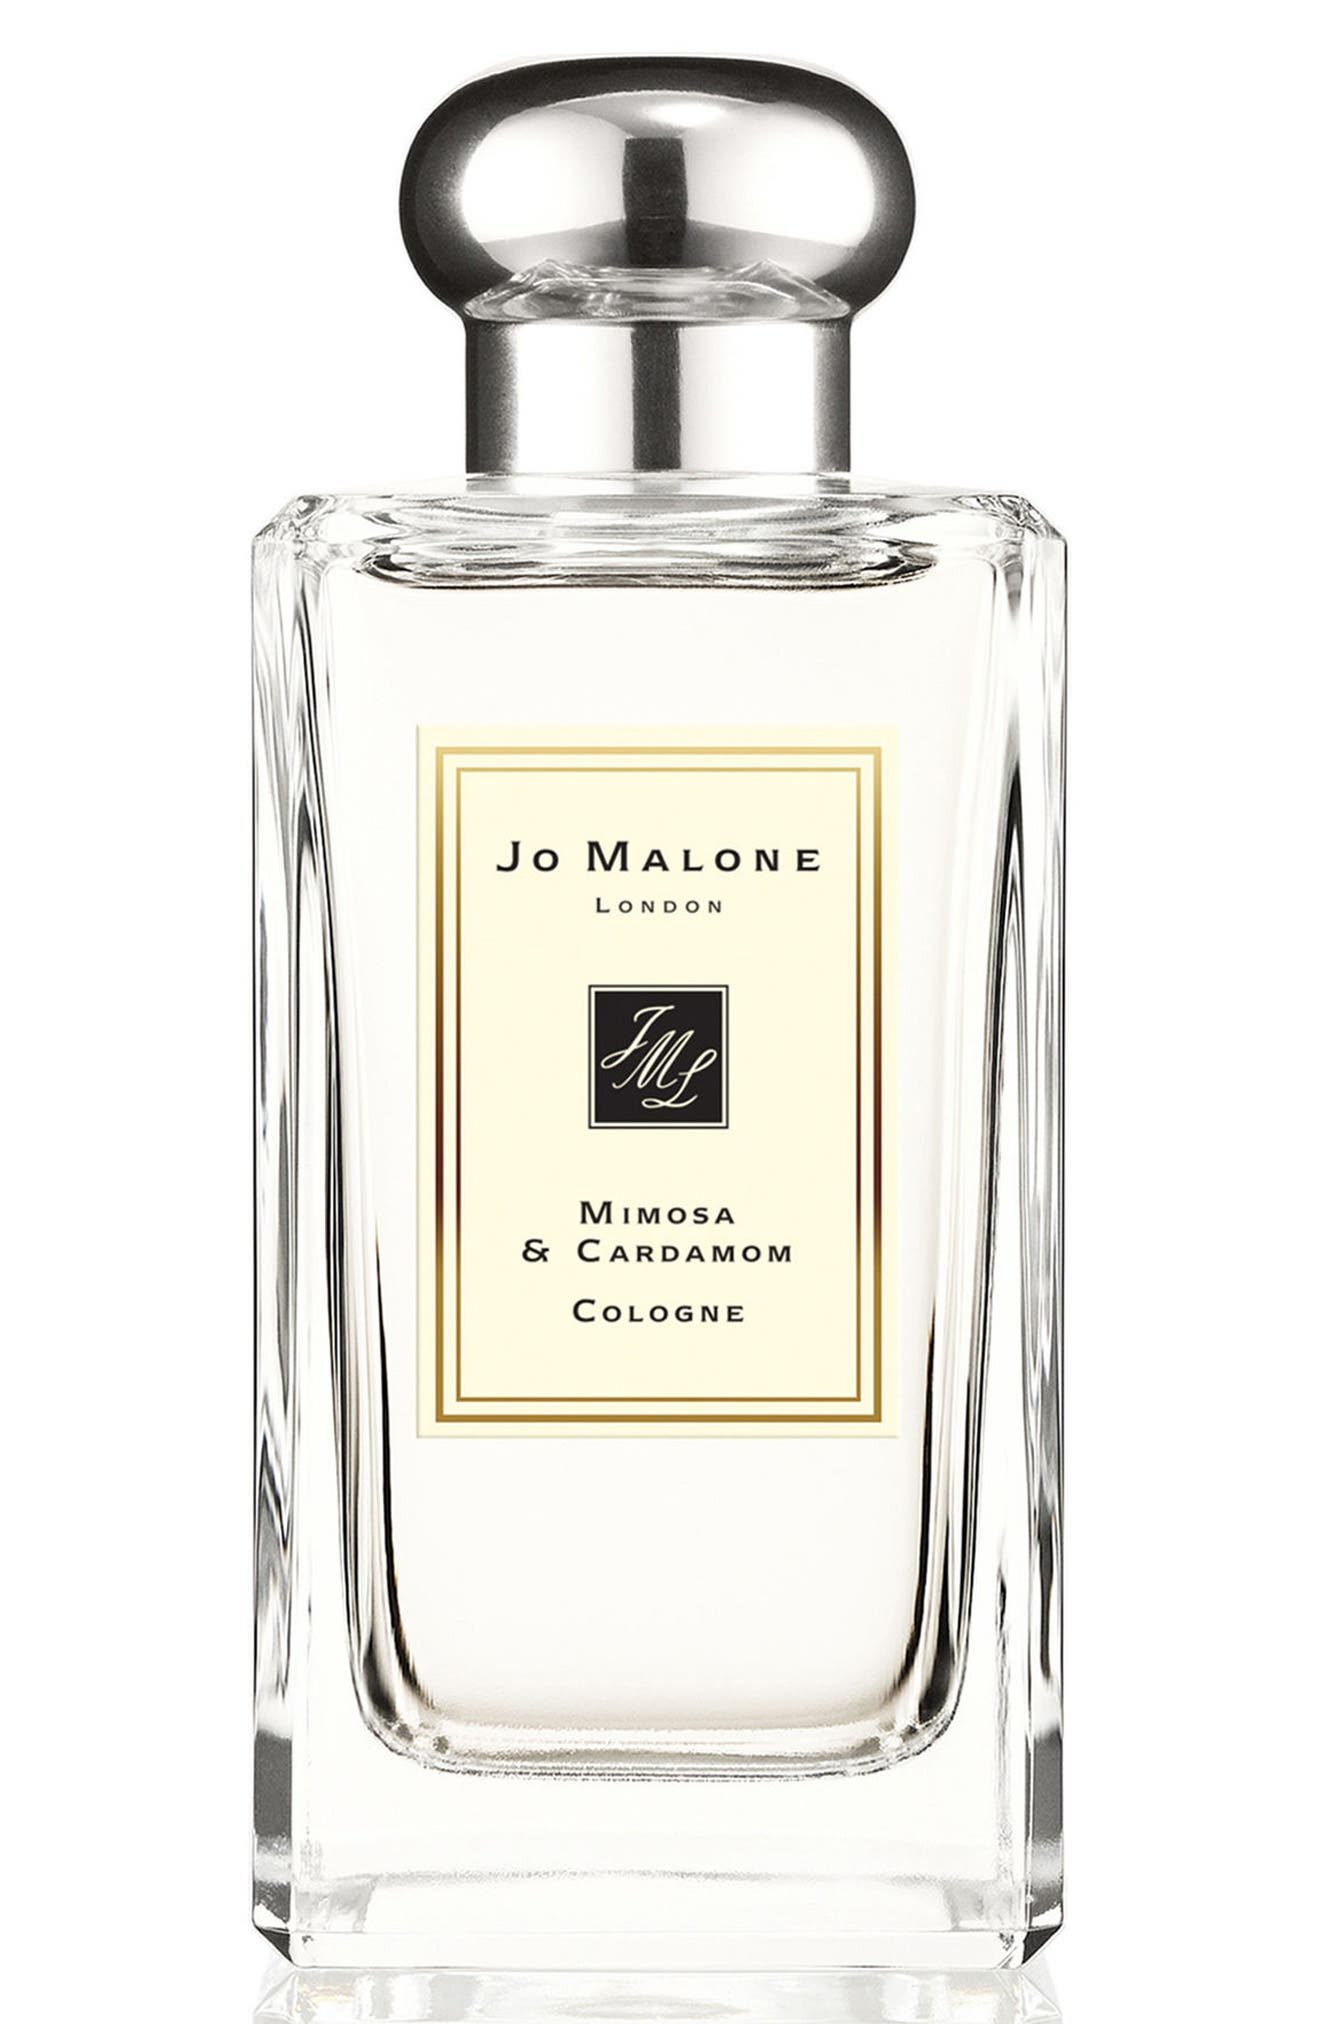 Jo Malone London™ Mimosa & Cardamom Cologne